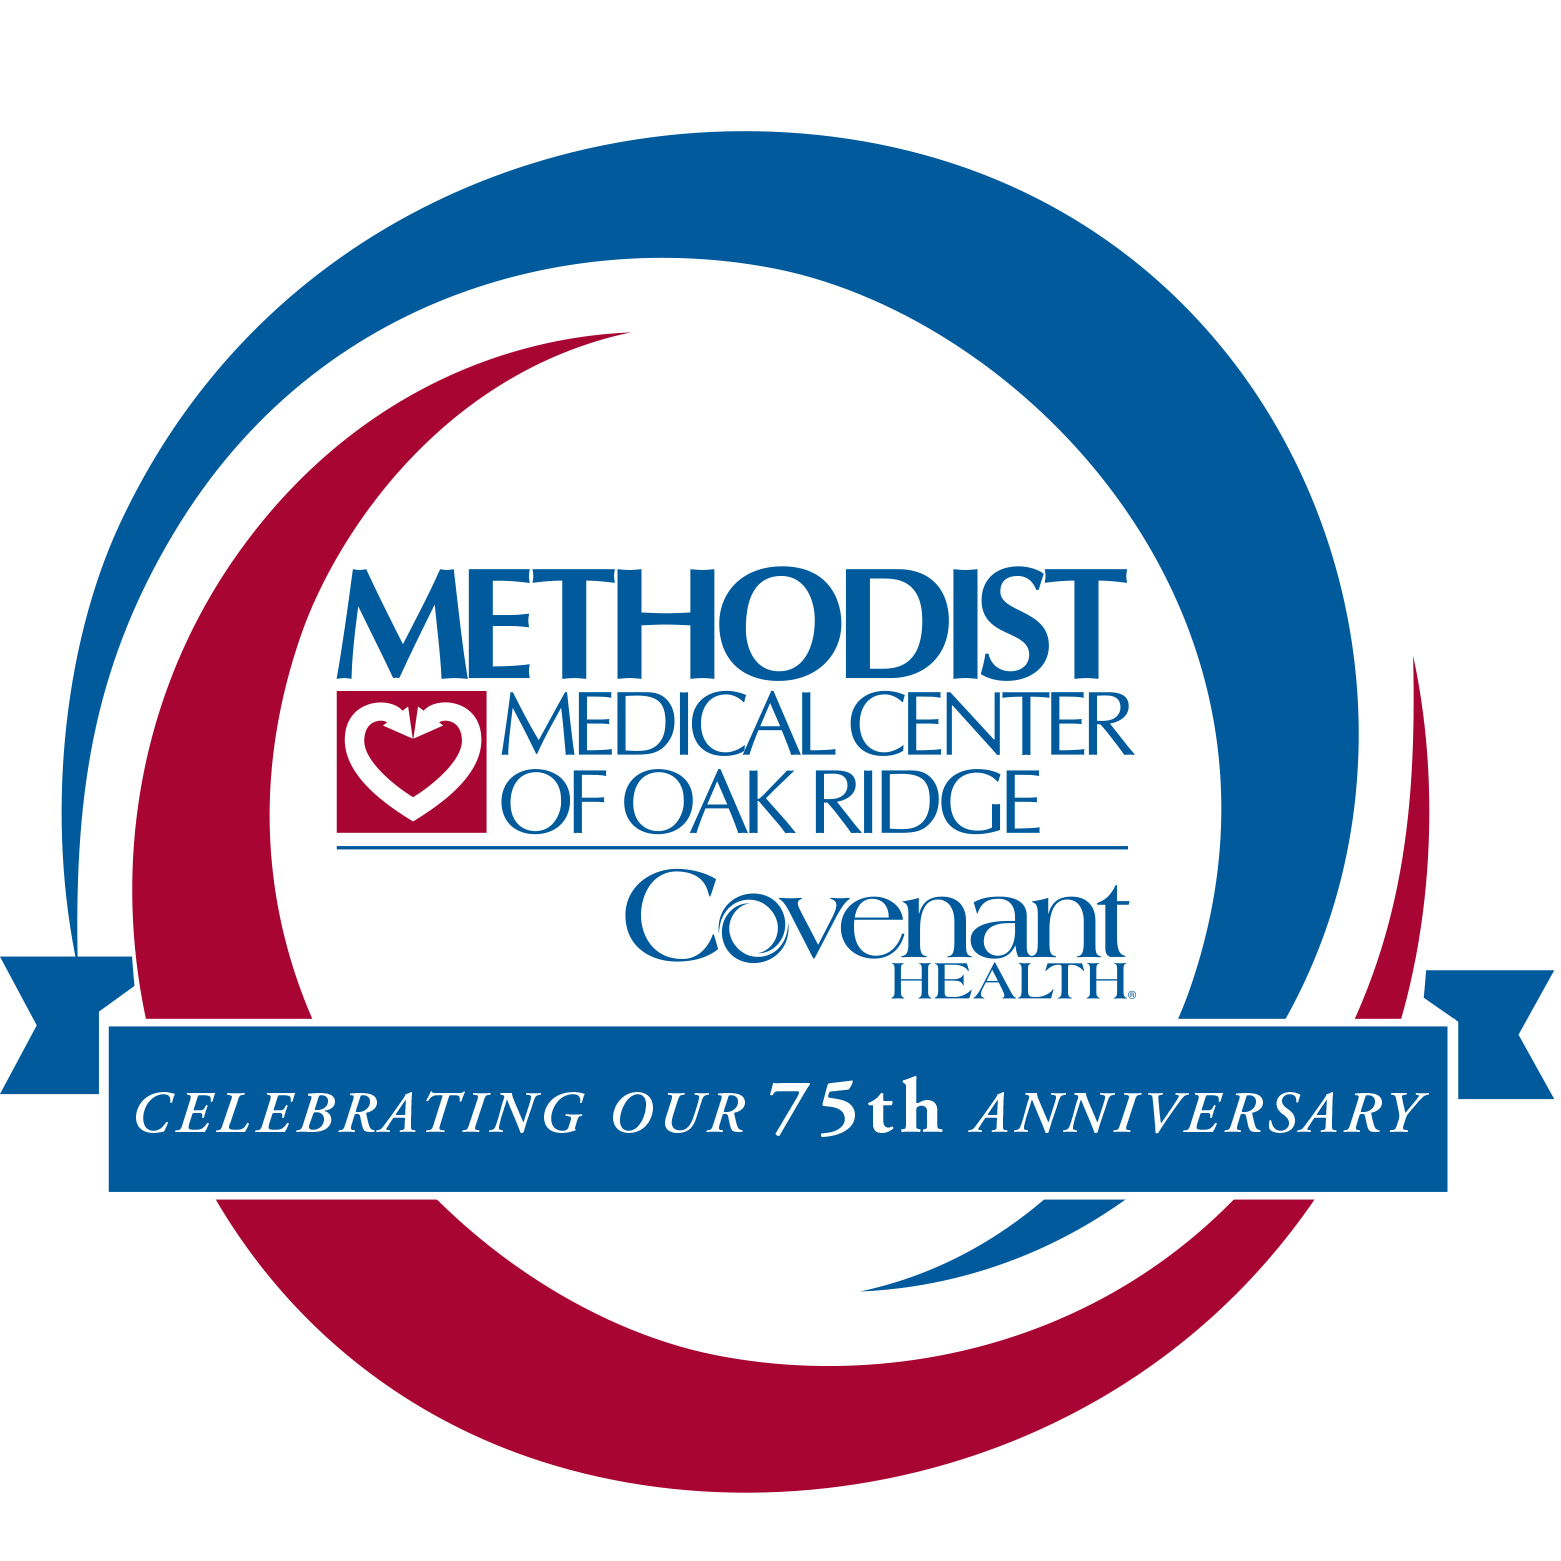 A History of Methodist Medical Center | Methodist Medical